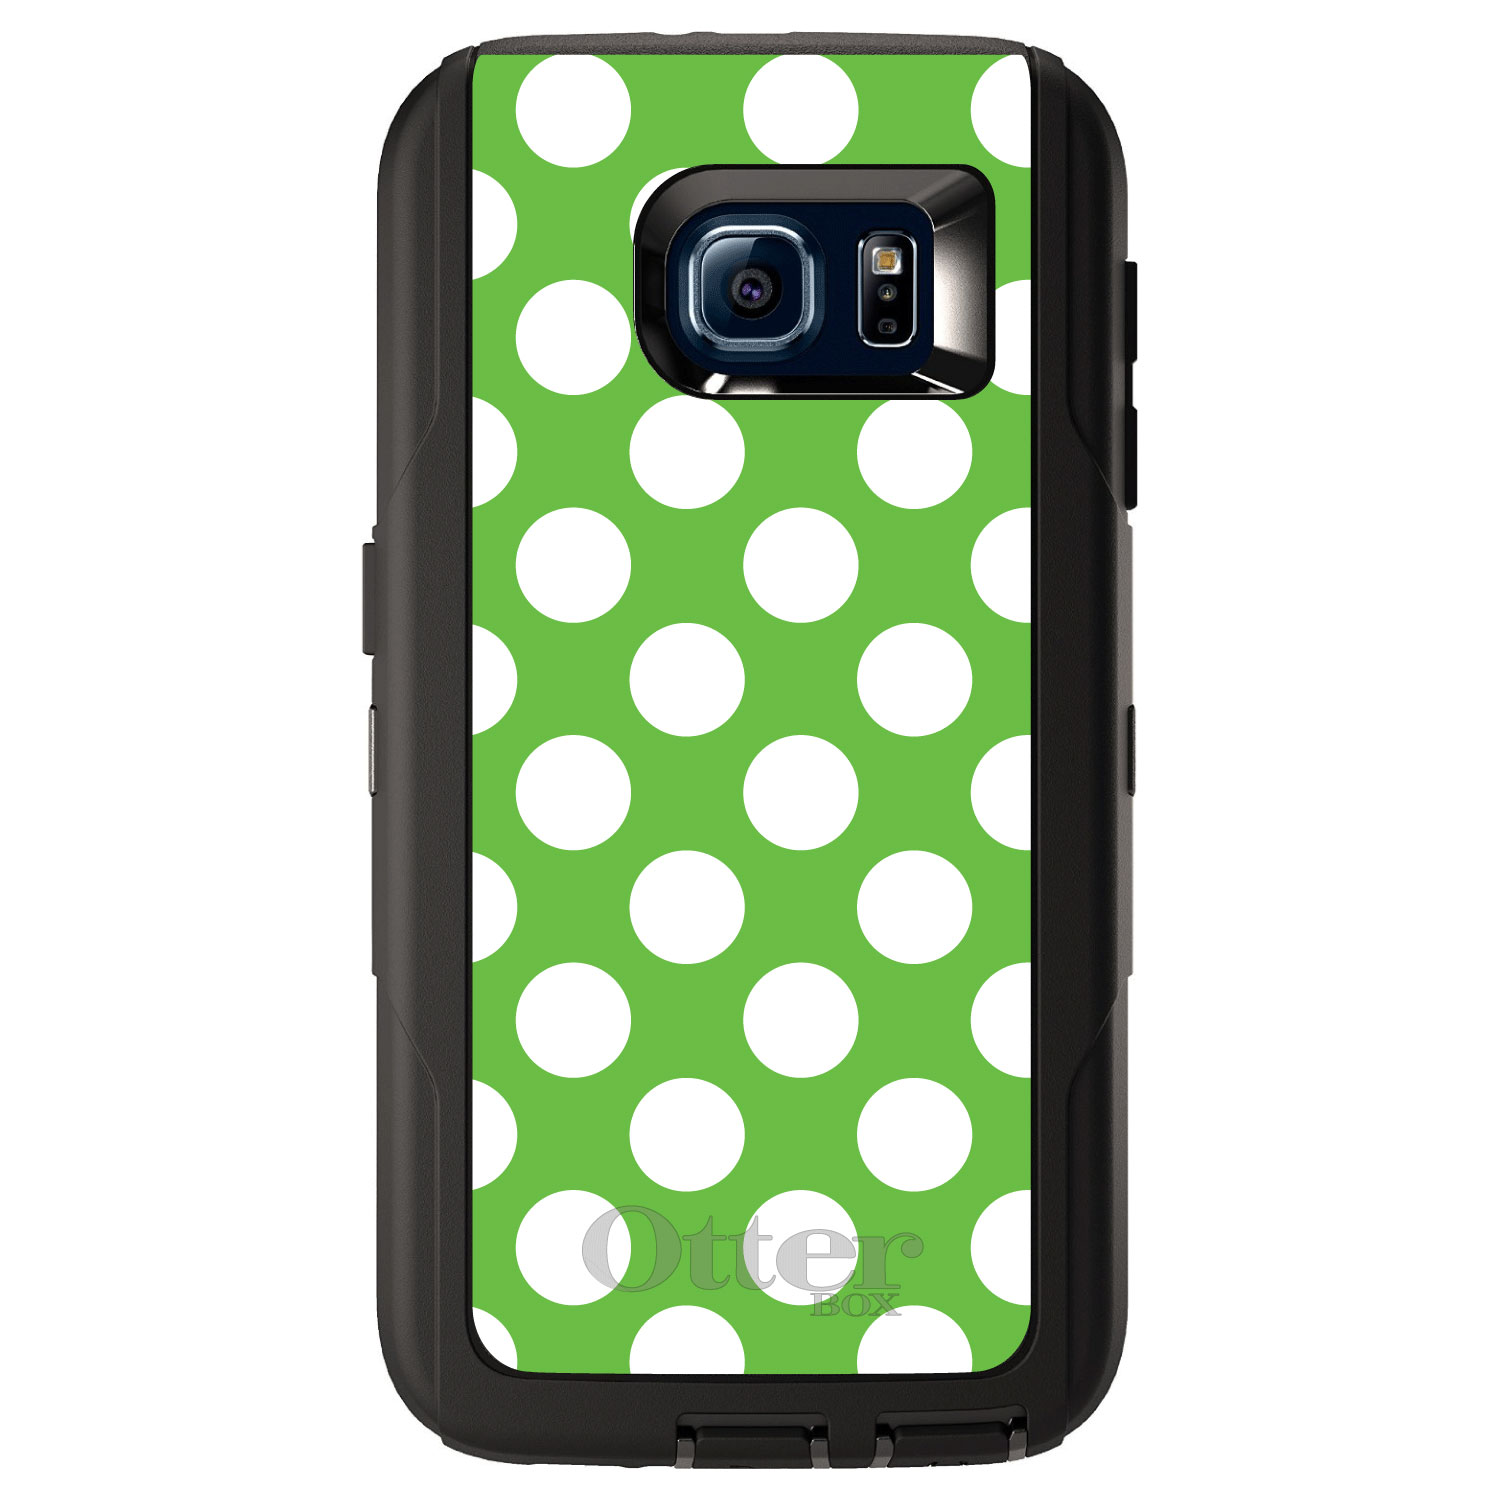 CUSTOM Black OtterBox Defender Series Case for Samsung Galaxy S6 - White & Green Polka Dots